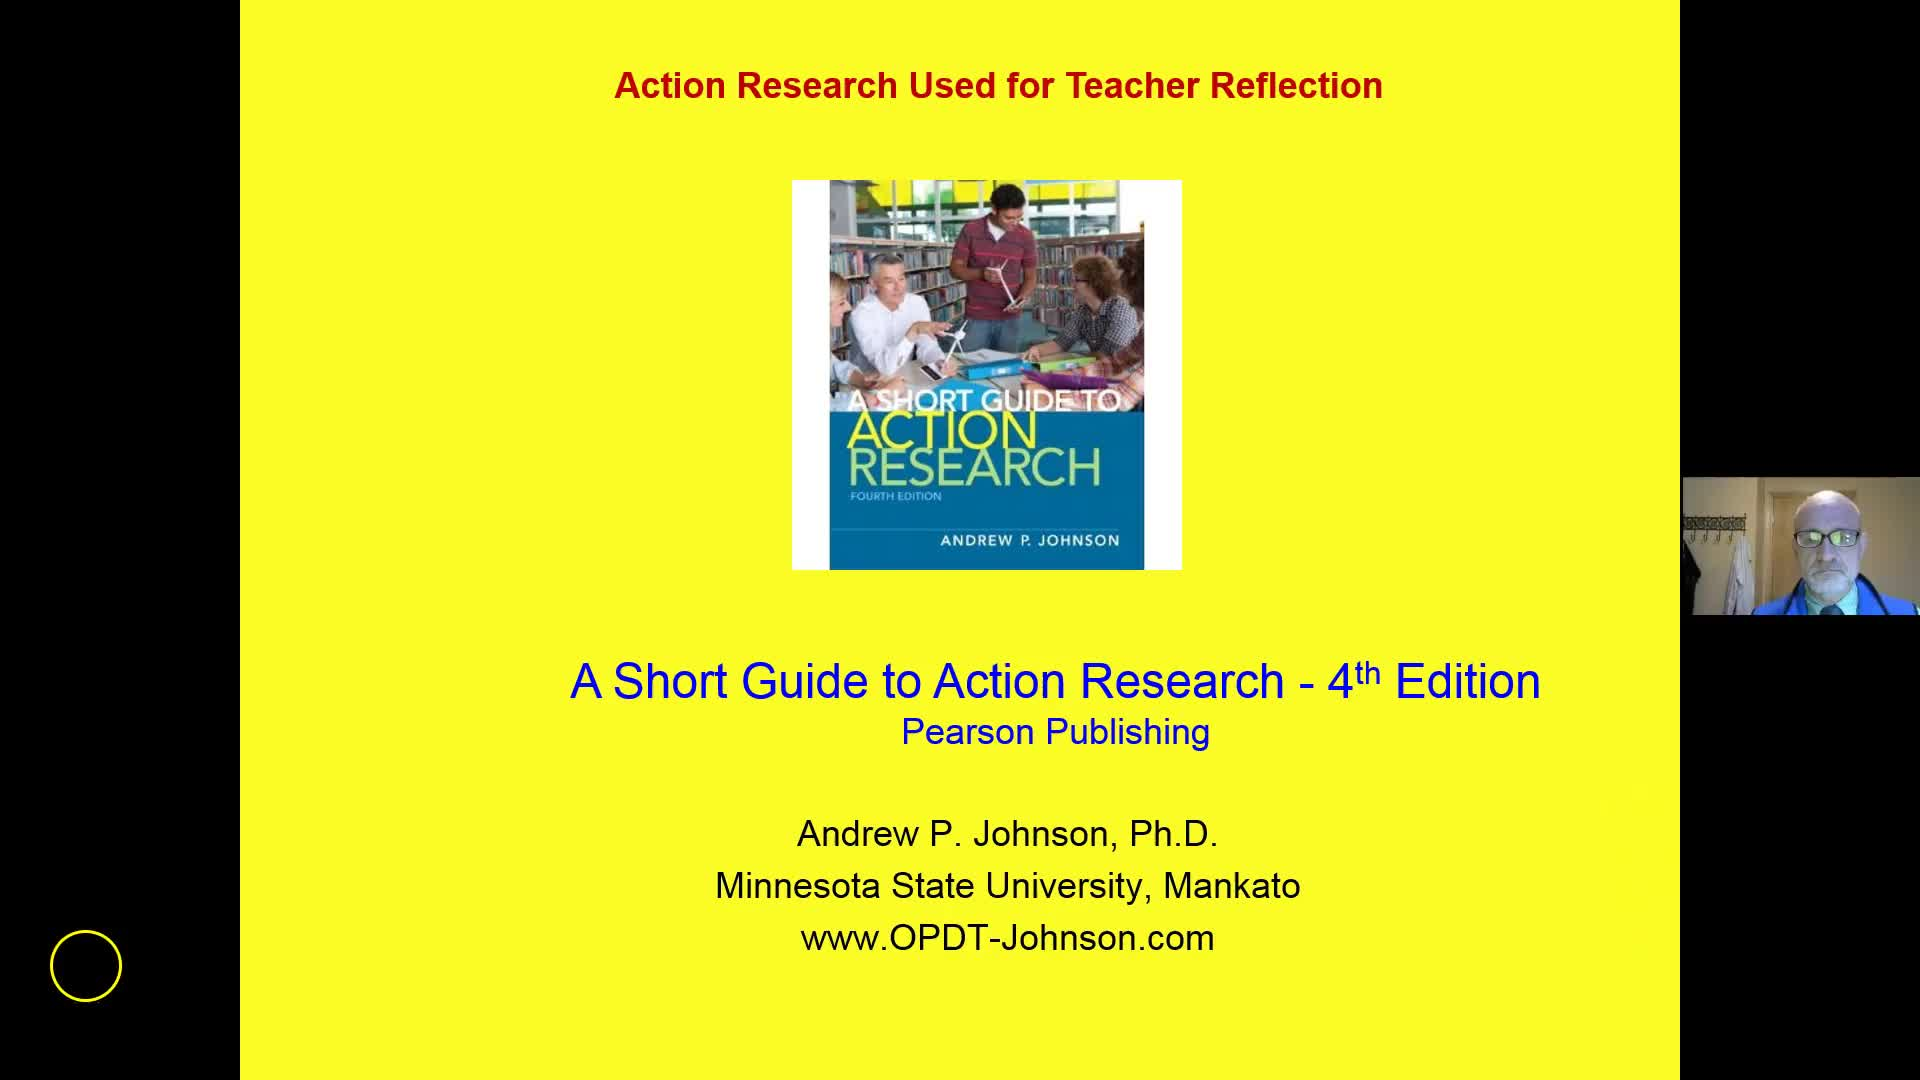 ACTION RESEARCH AND TEACHER REFLECTION